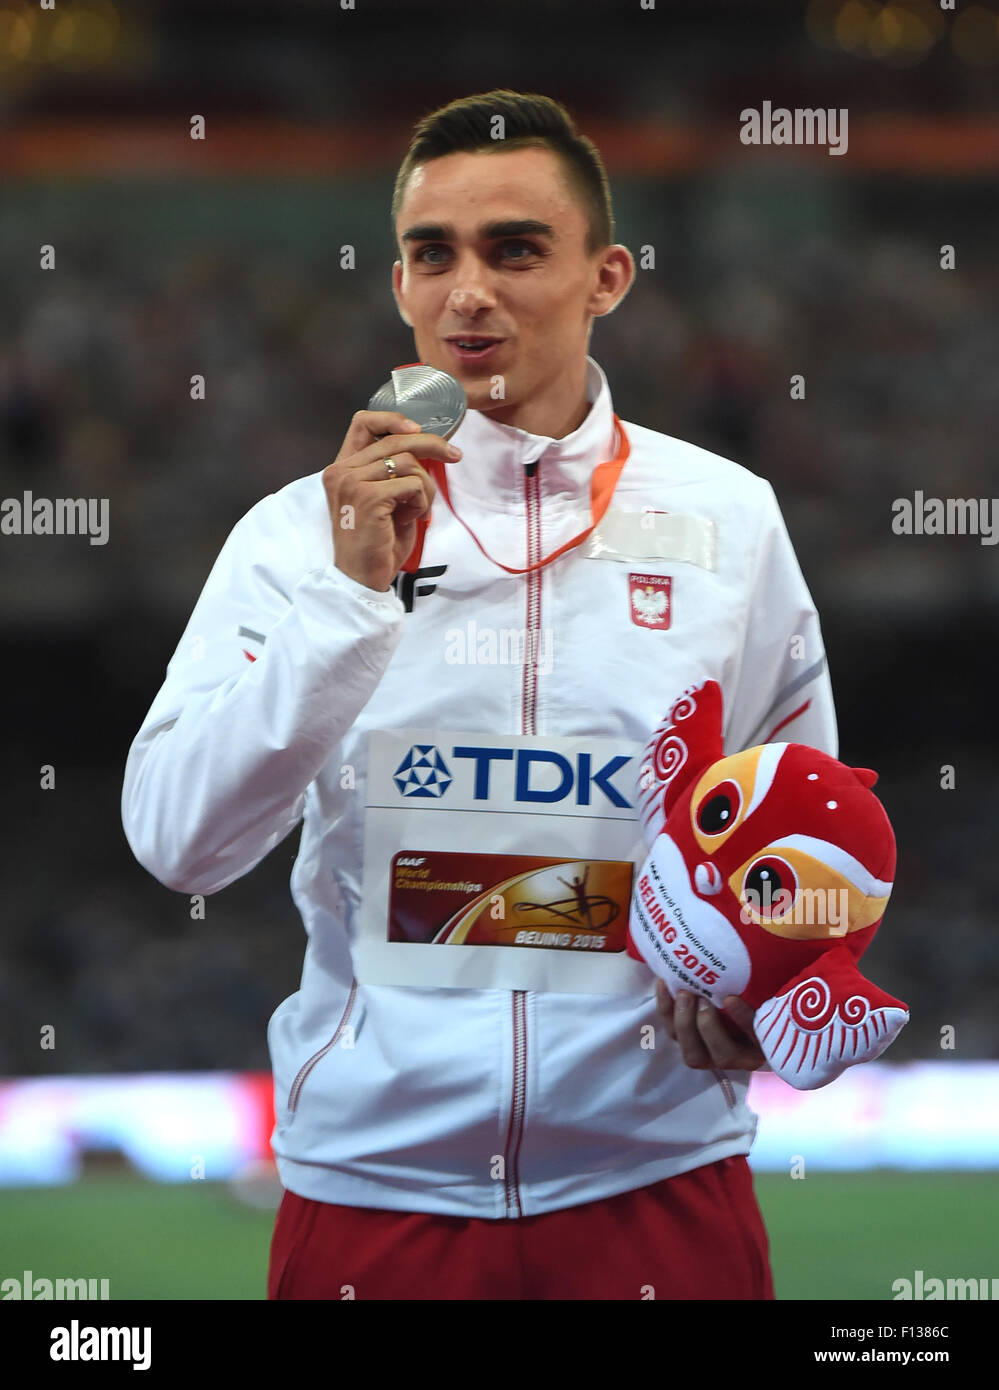 Beijing, China. 26th Aug, 2015. Silver medalist Poland's Adam Kszczot celebrates during the awarding ceremony - Stock Image